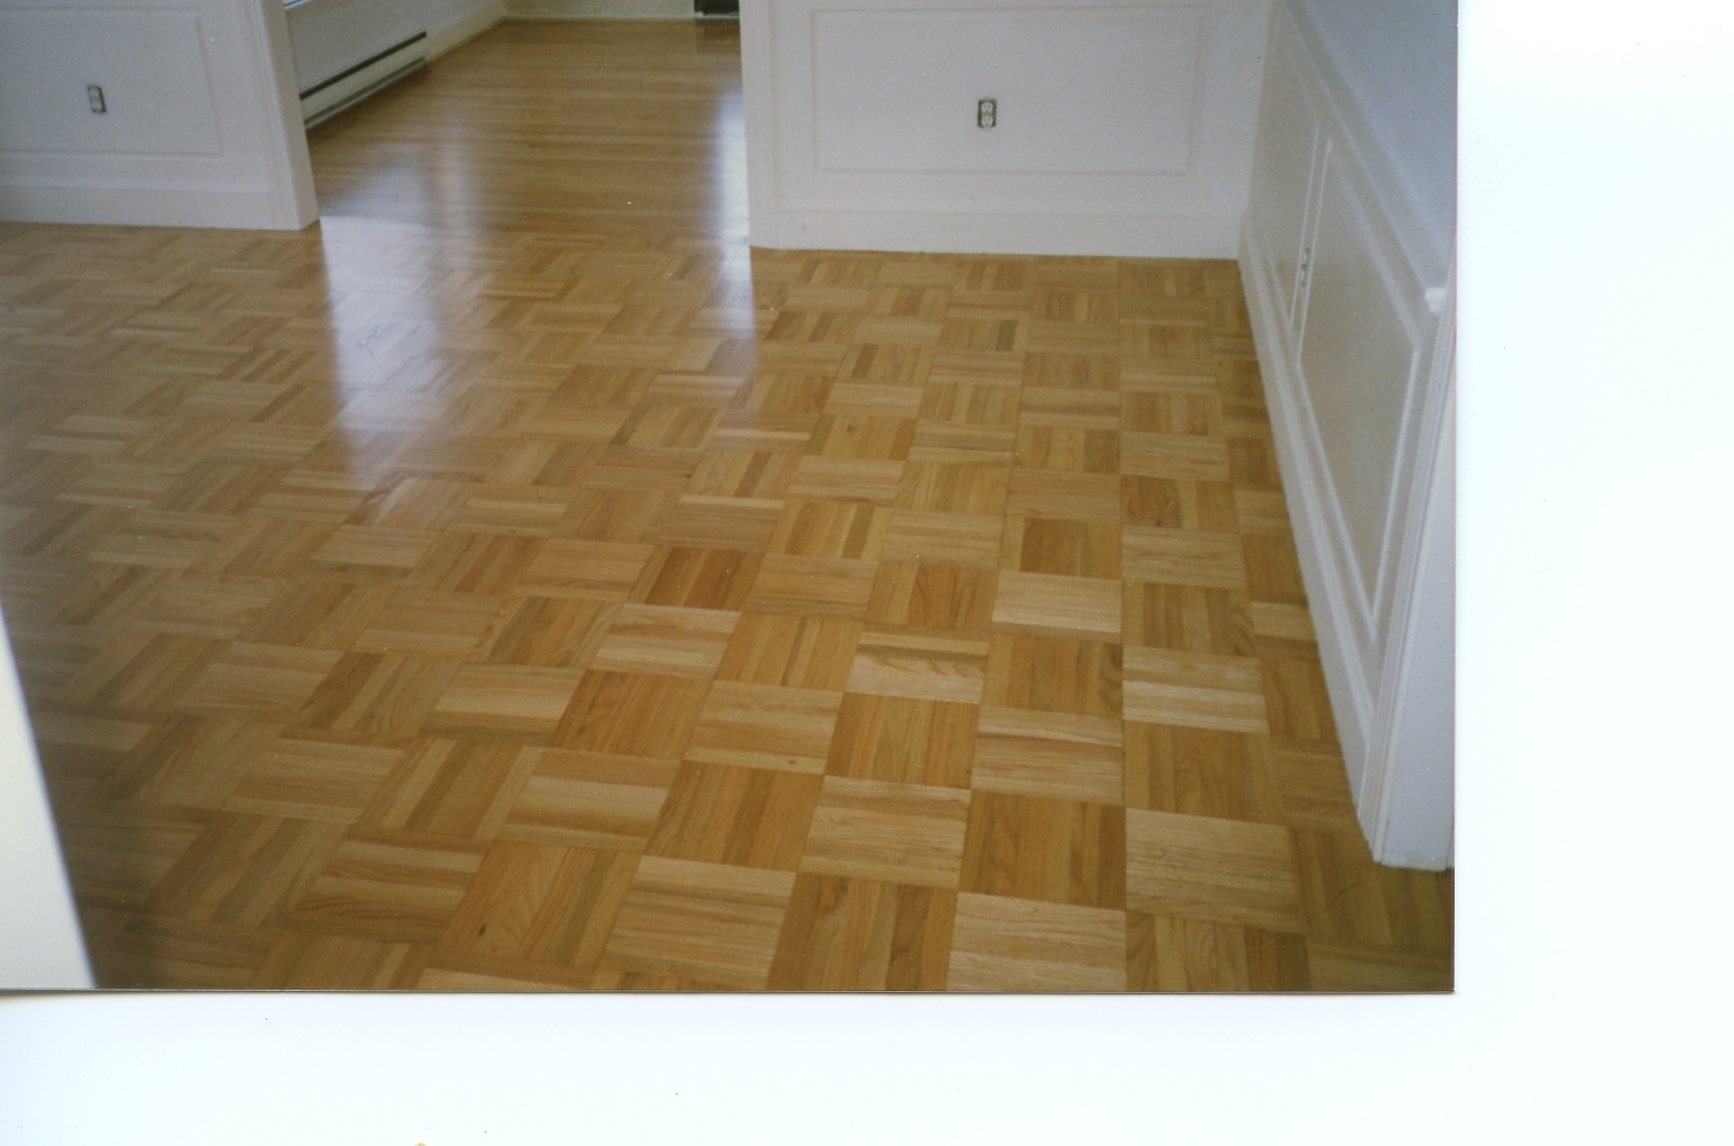 Stained hard wood floors duffyfloors for Hard floor tiles